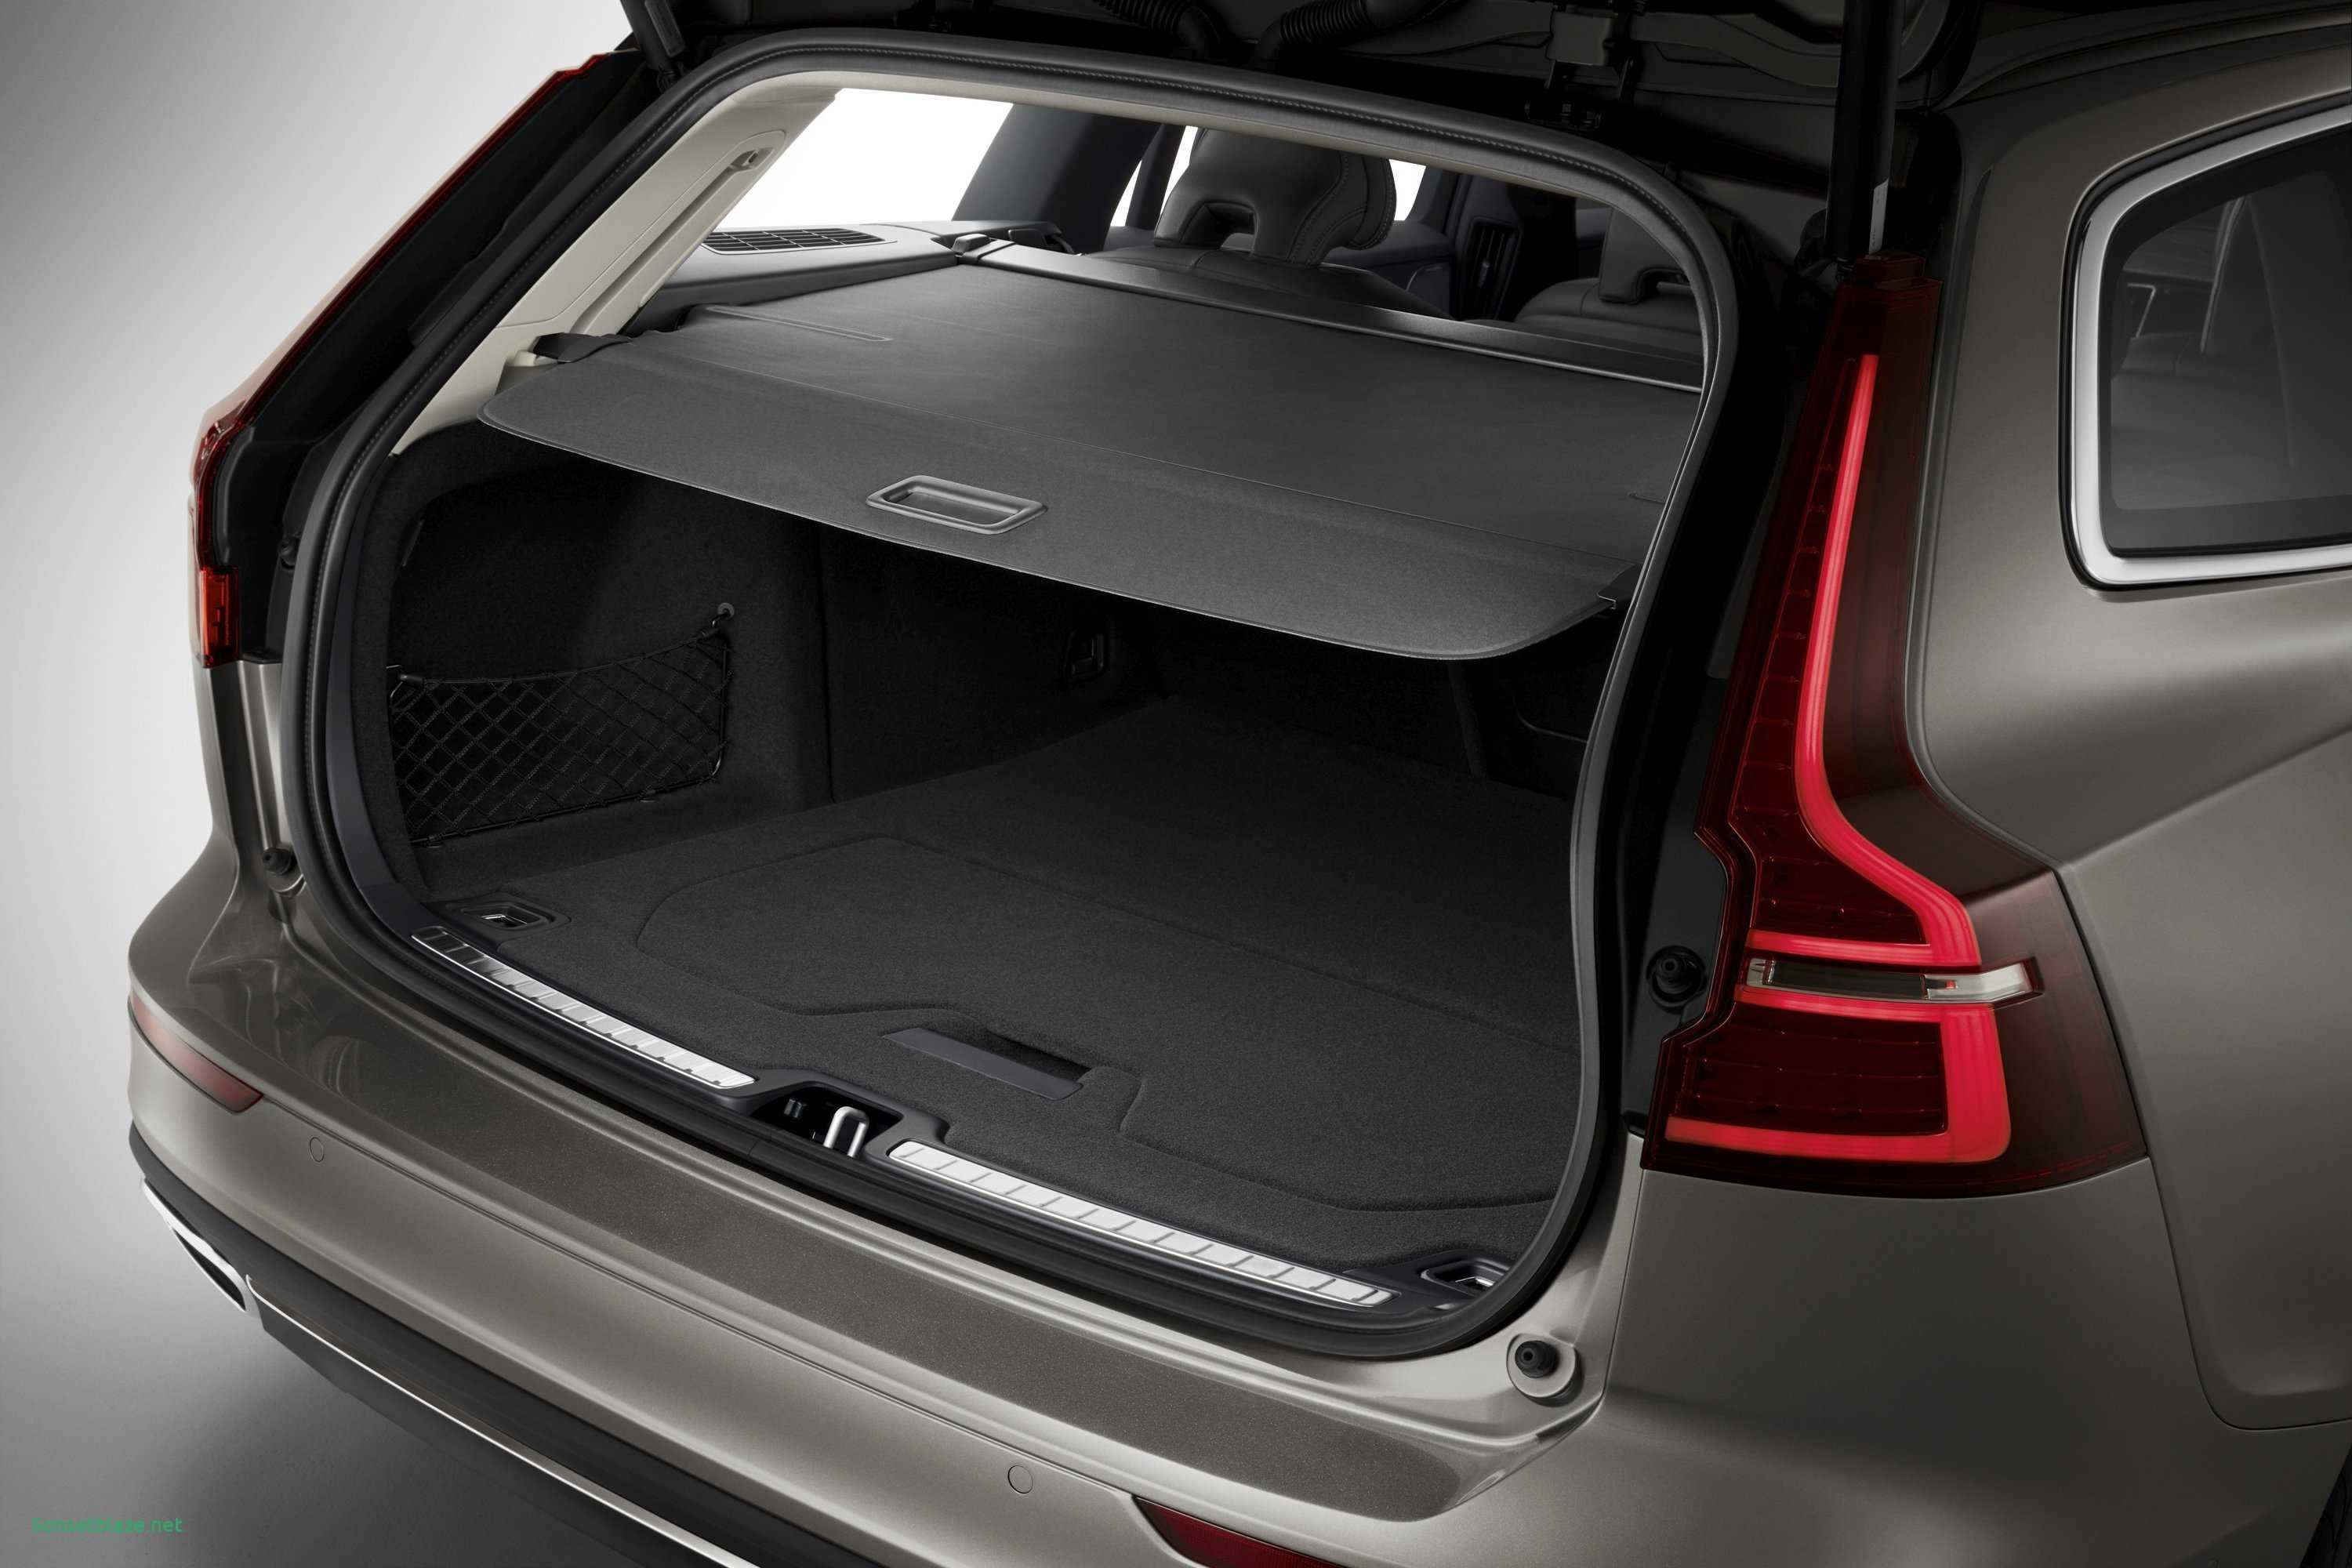 79 The Best 2019 Volvo Xc70 New Generation Wagon Pictures